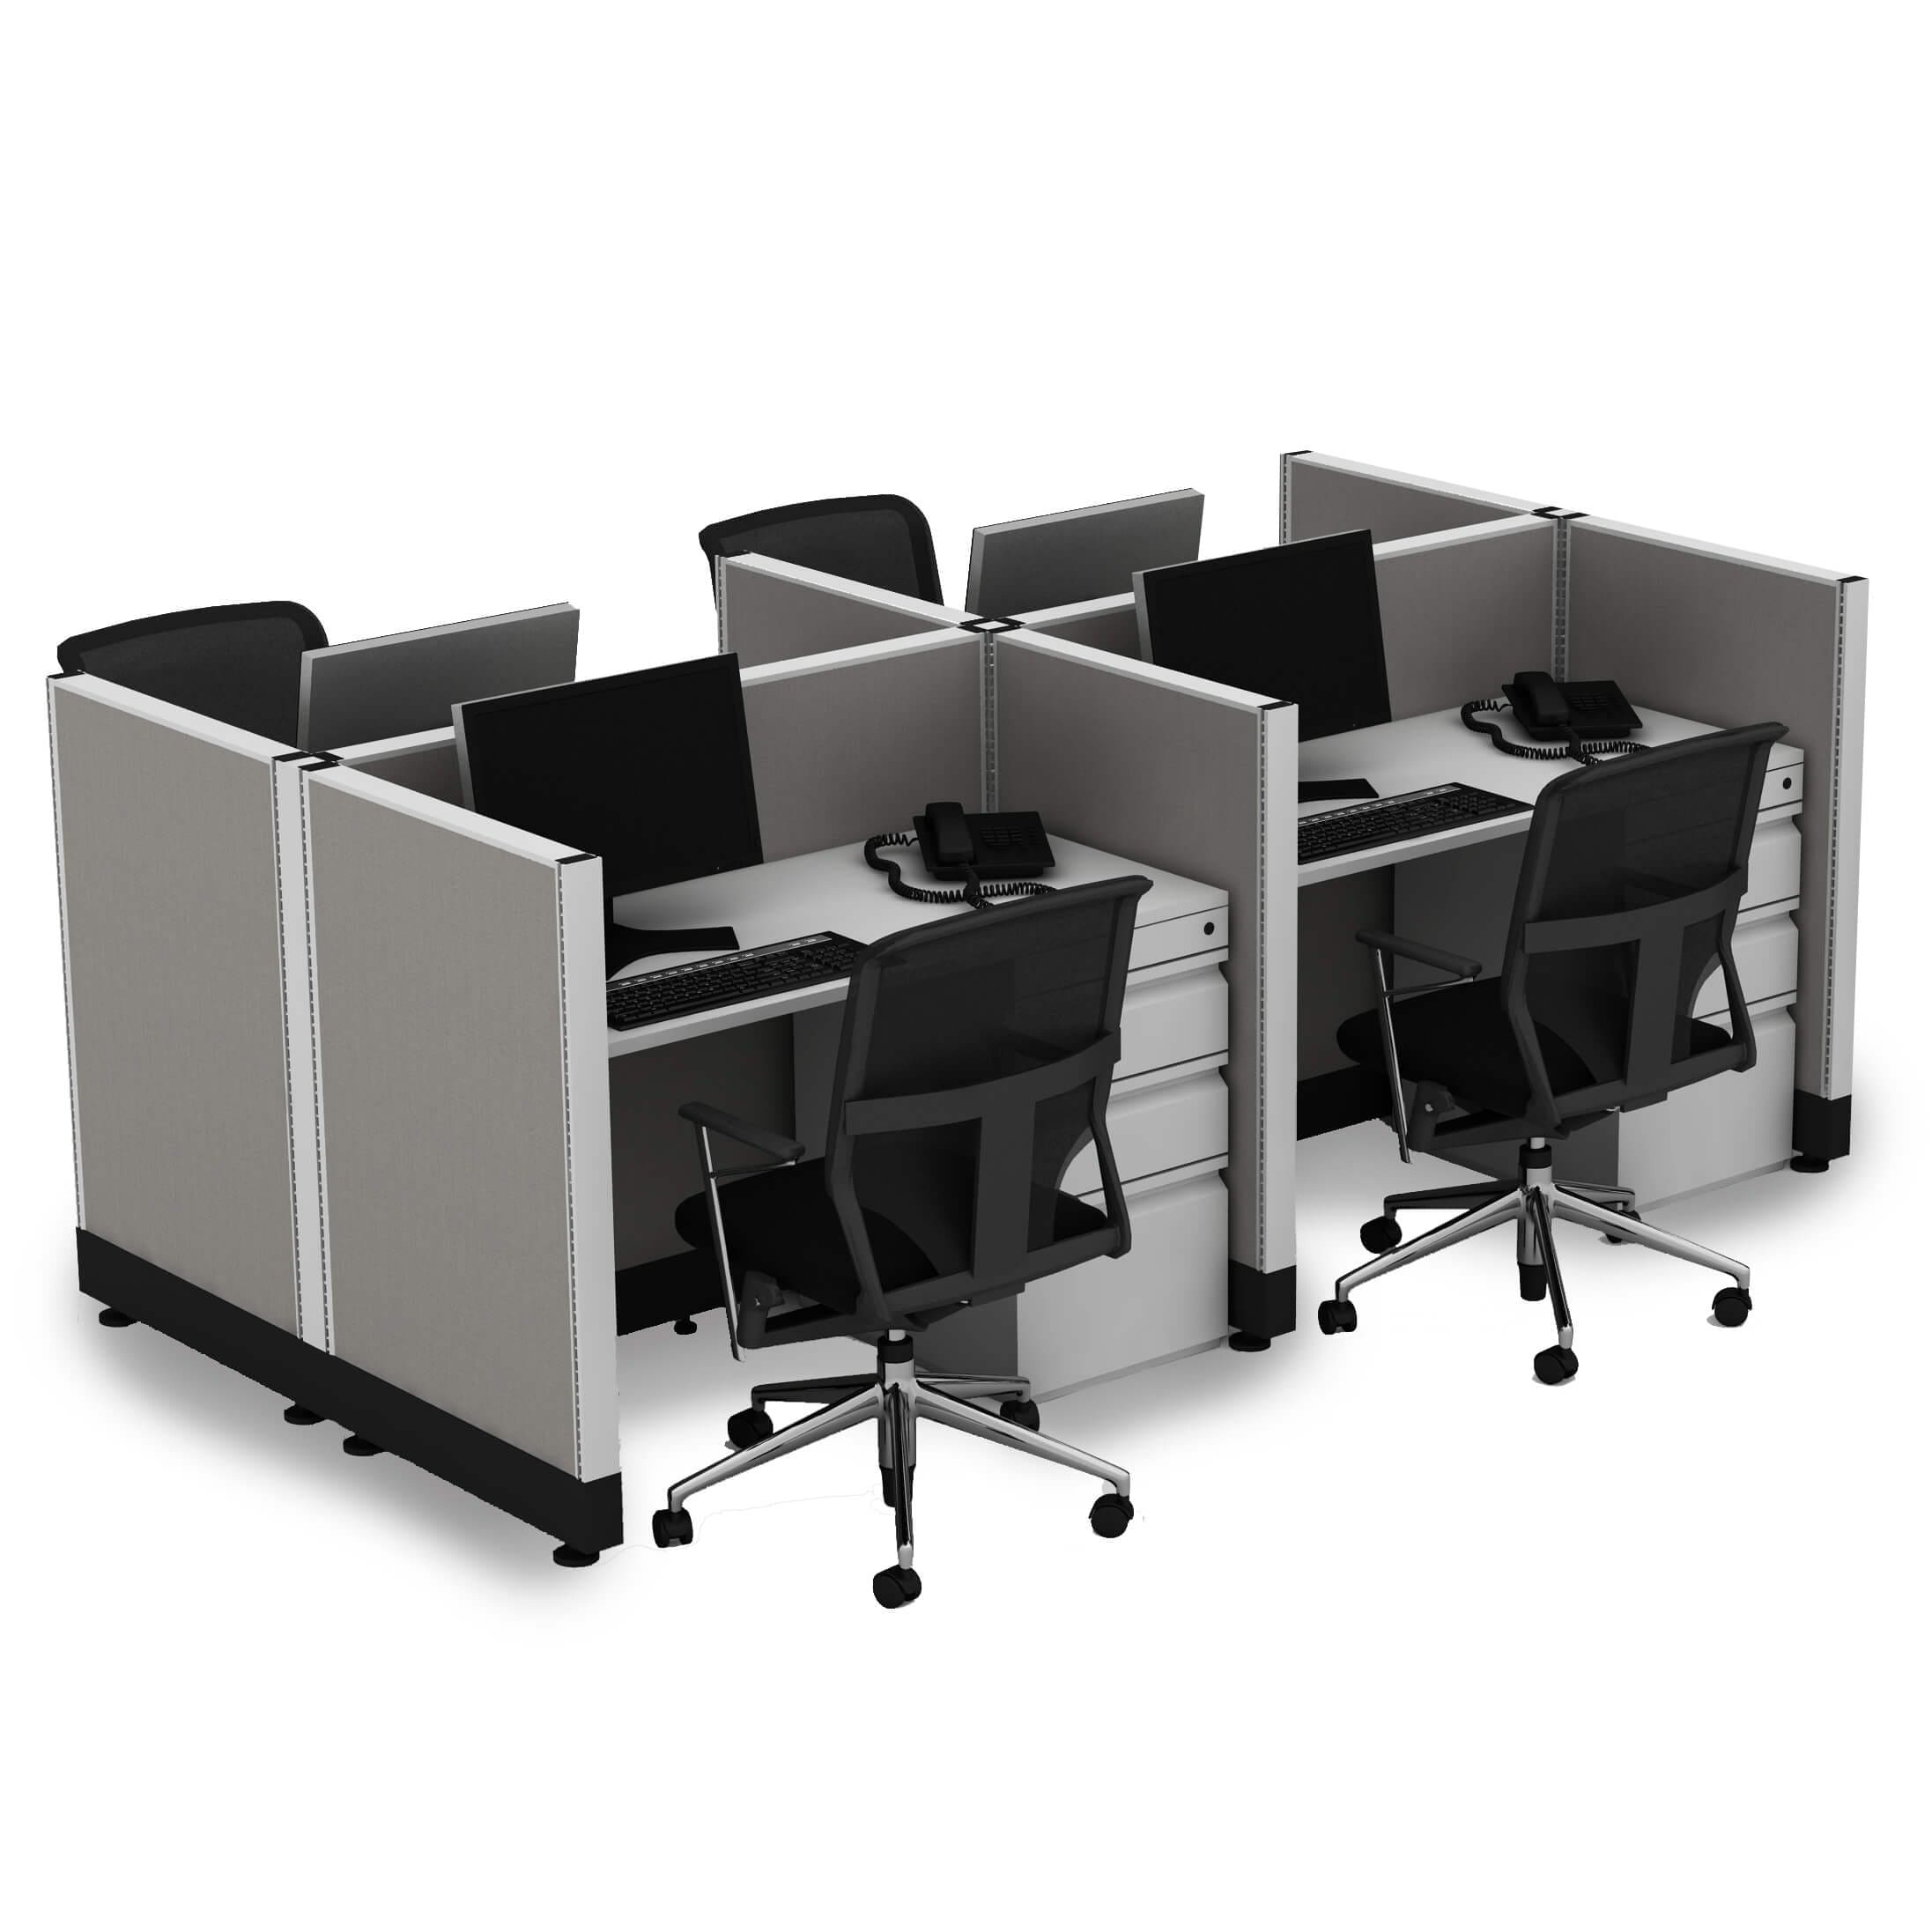 Small Cubicles 39H 4pack Cluster Powered (3x4 - Espresso Desk White Paint - Assembled)